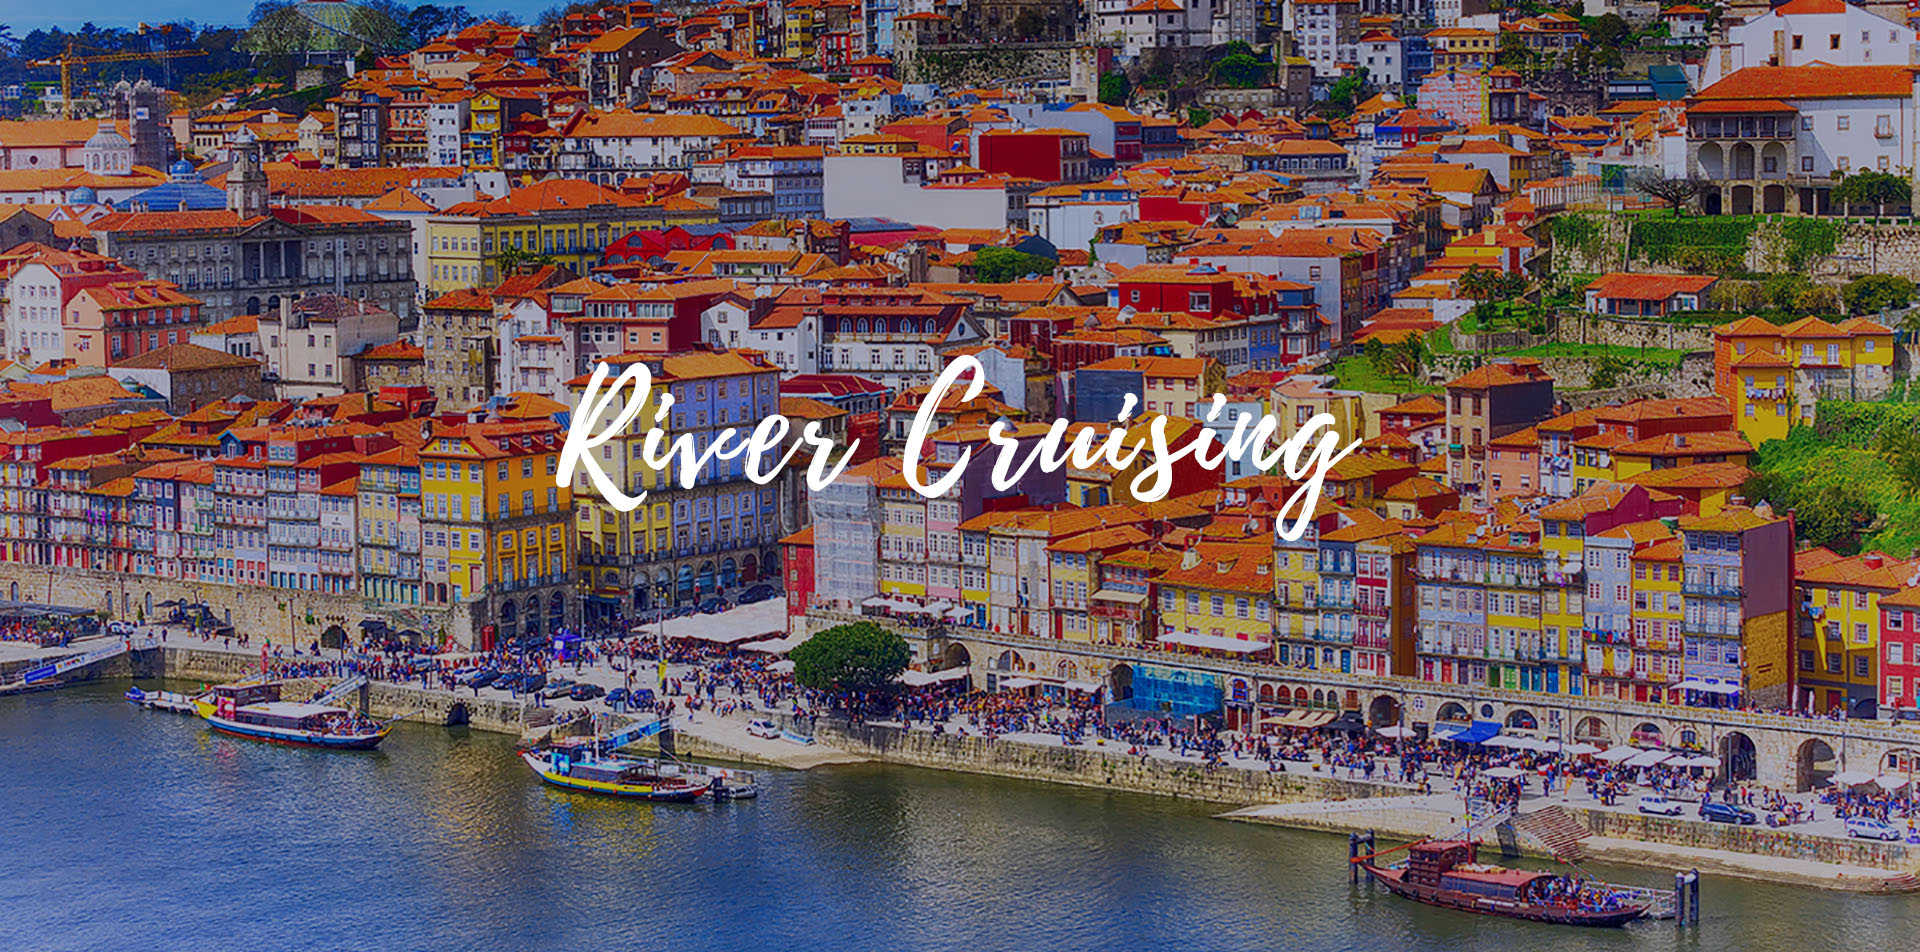 Europe Douro river cruising beautiful colorful homes overlooking river-bridge-luxury vacation destinations